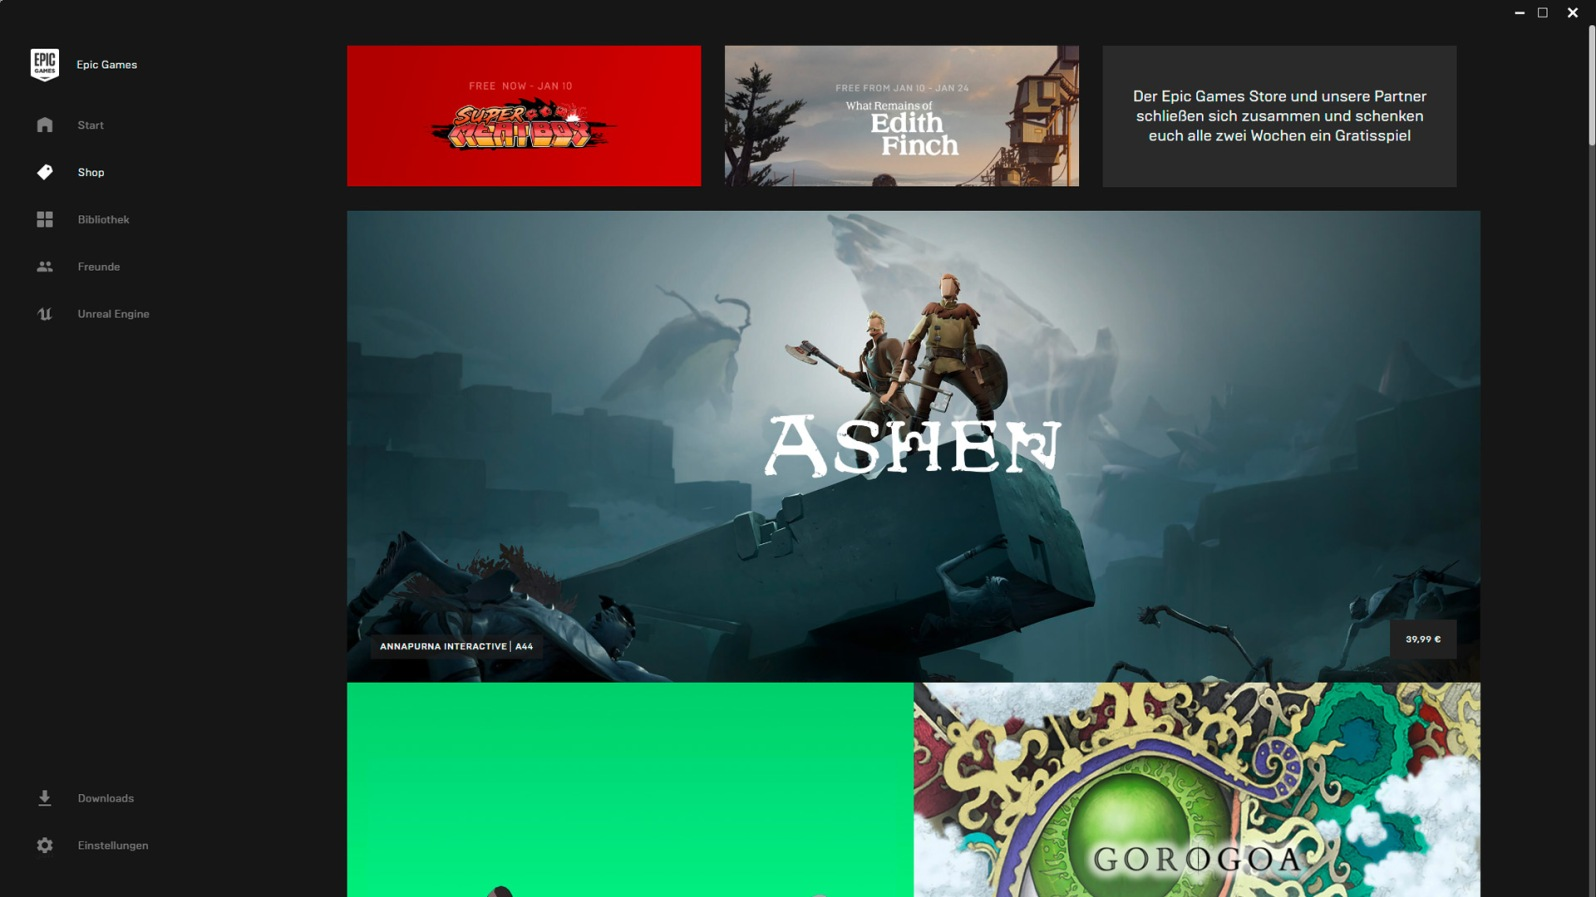 Quelle: Epic Games Store - Gratis-Spiele im Monat Januar (Super Meat Boy & What Remains of Edith Finch)